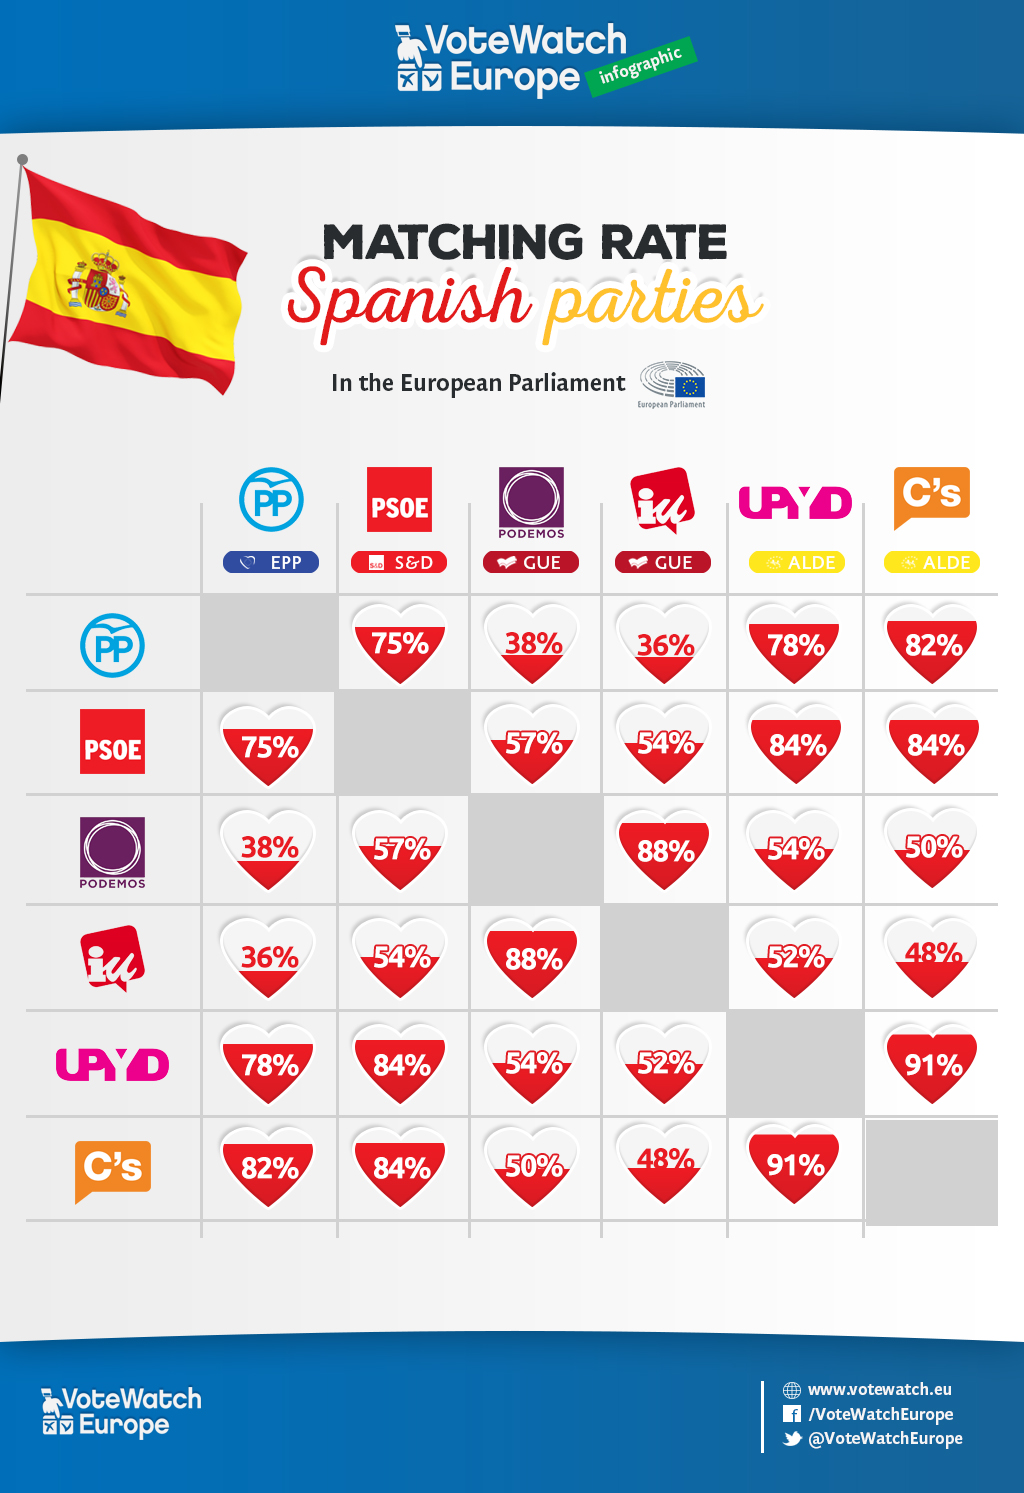 Spanishparties_infographic_matchingrate